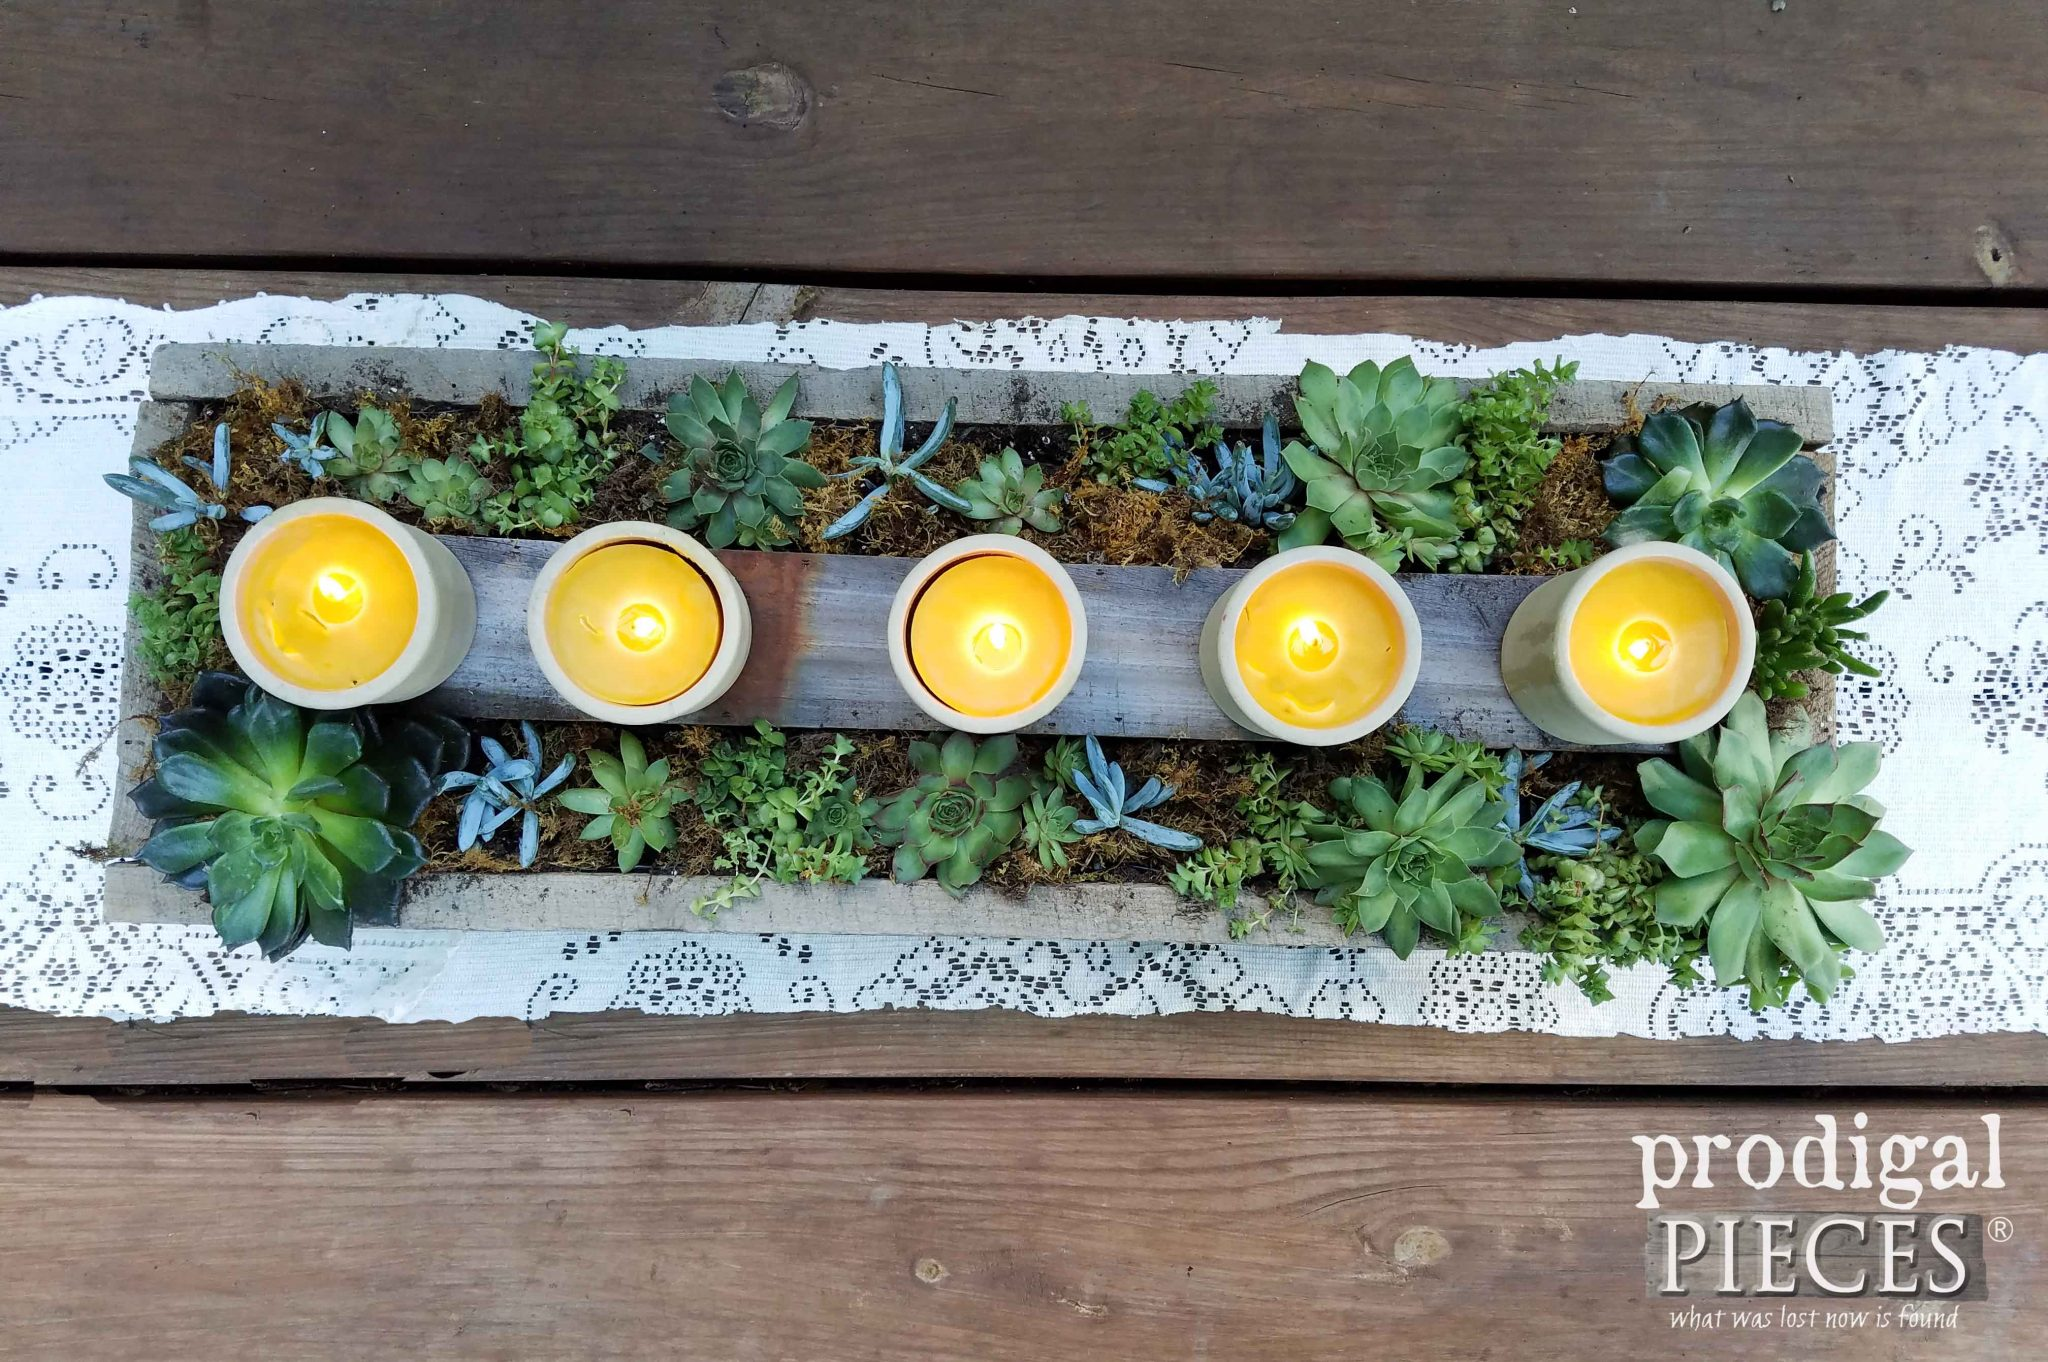 Homemade Beeswax Candles in Succulent Centerpiece by Prodigal Pieces | prodgalpieces.com